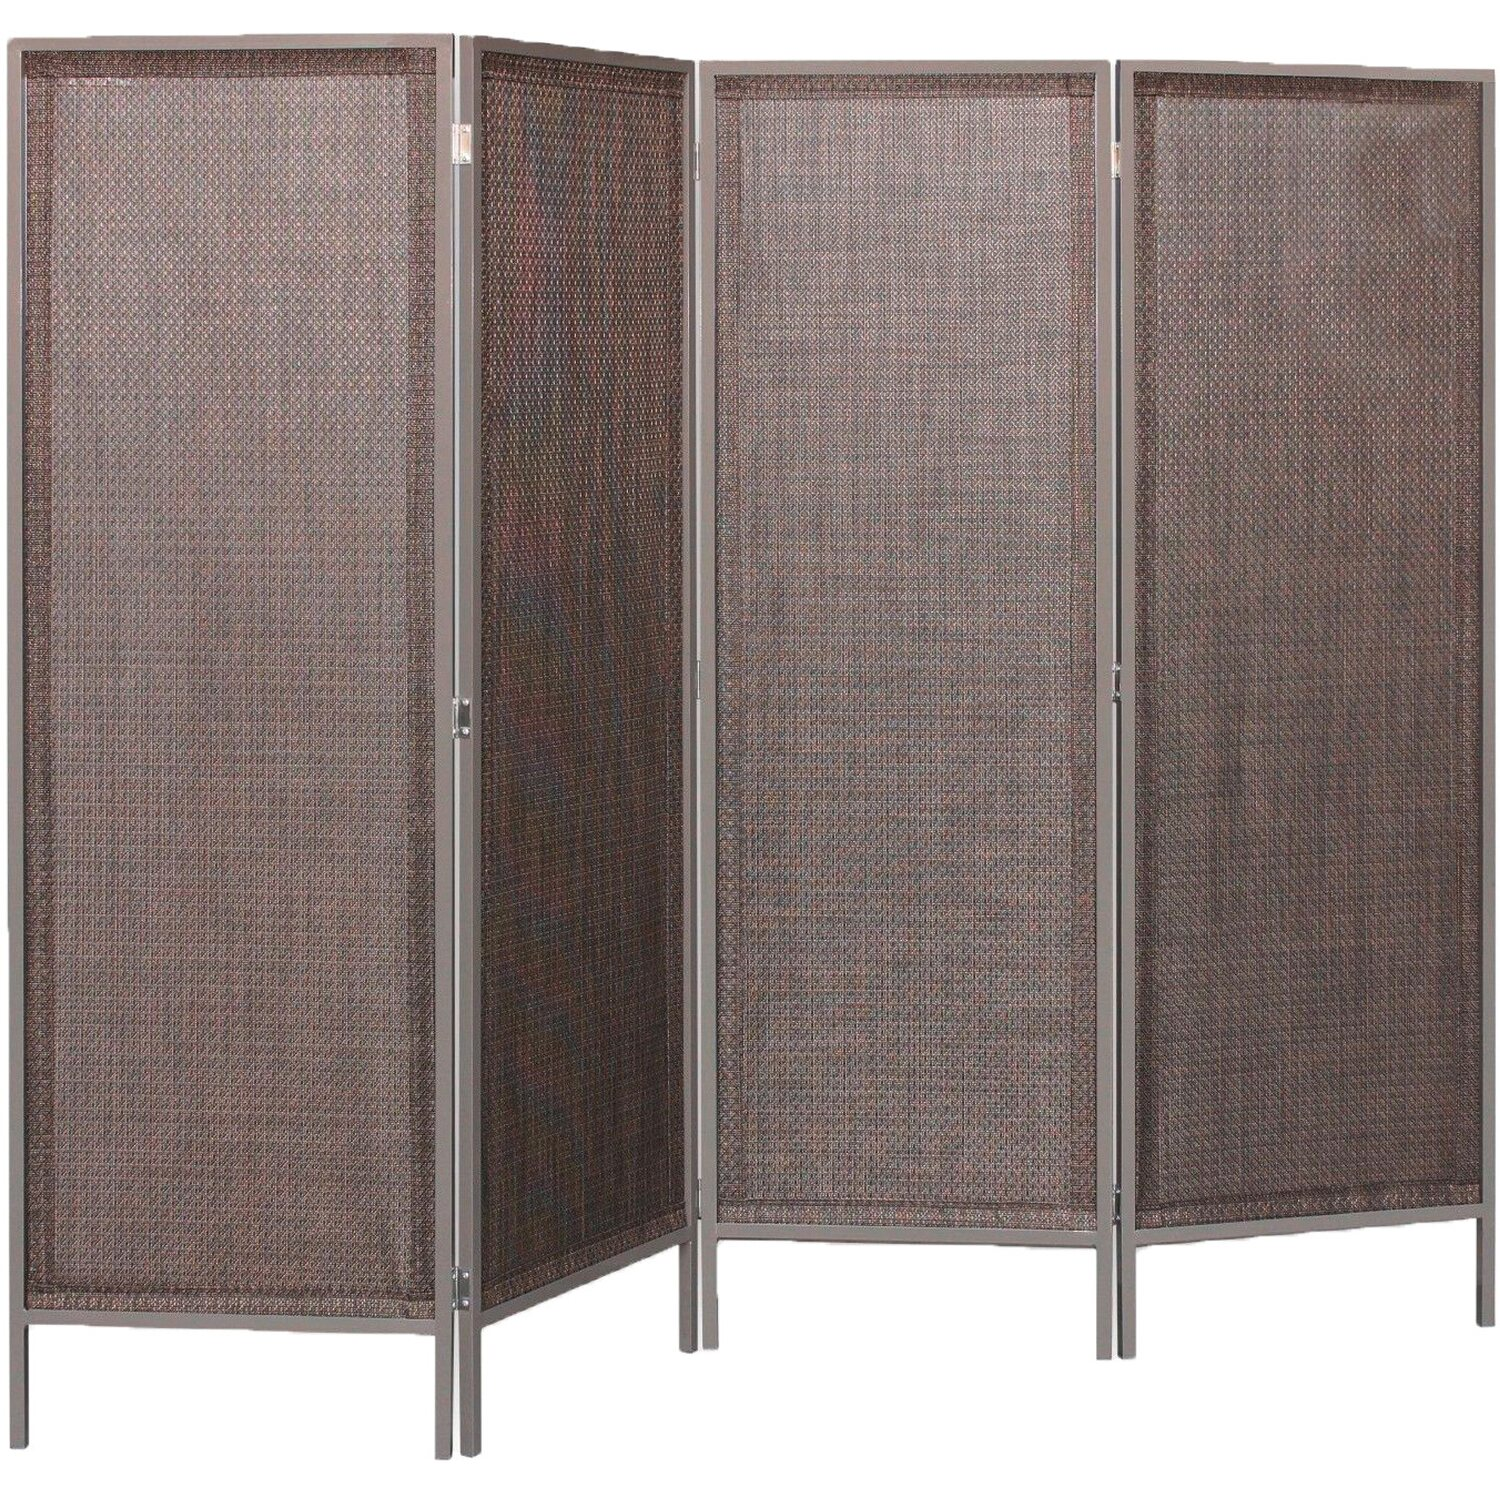 gartenzaun paravent weave l x 4 teilig bronze 225 cm x 180 cm kaufen bei obi. Black Bedroom Furniture Sets. Home Design Ideas